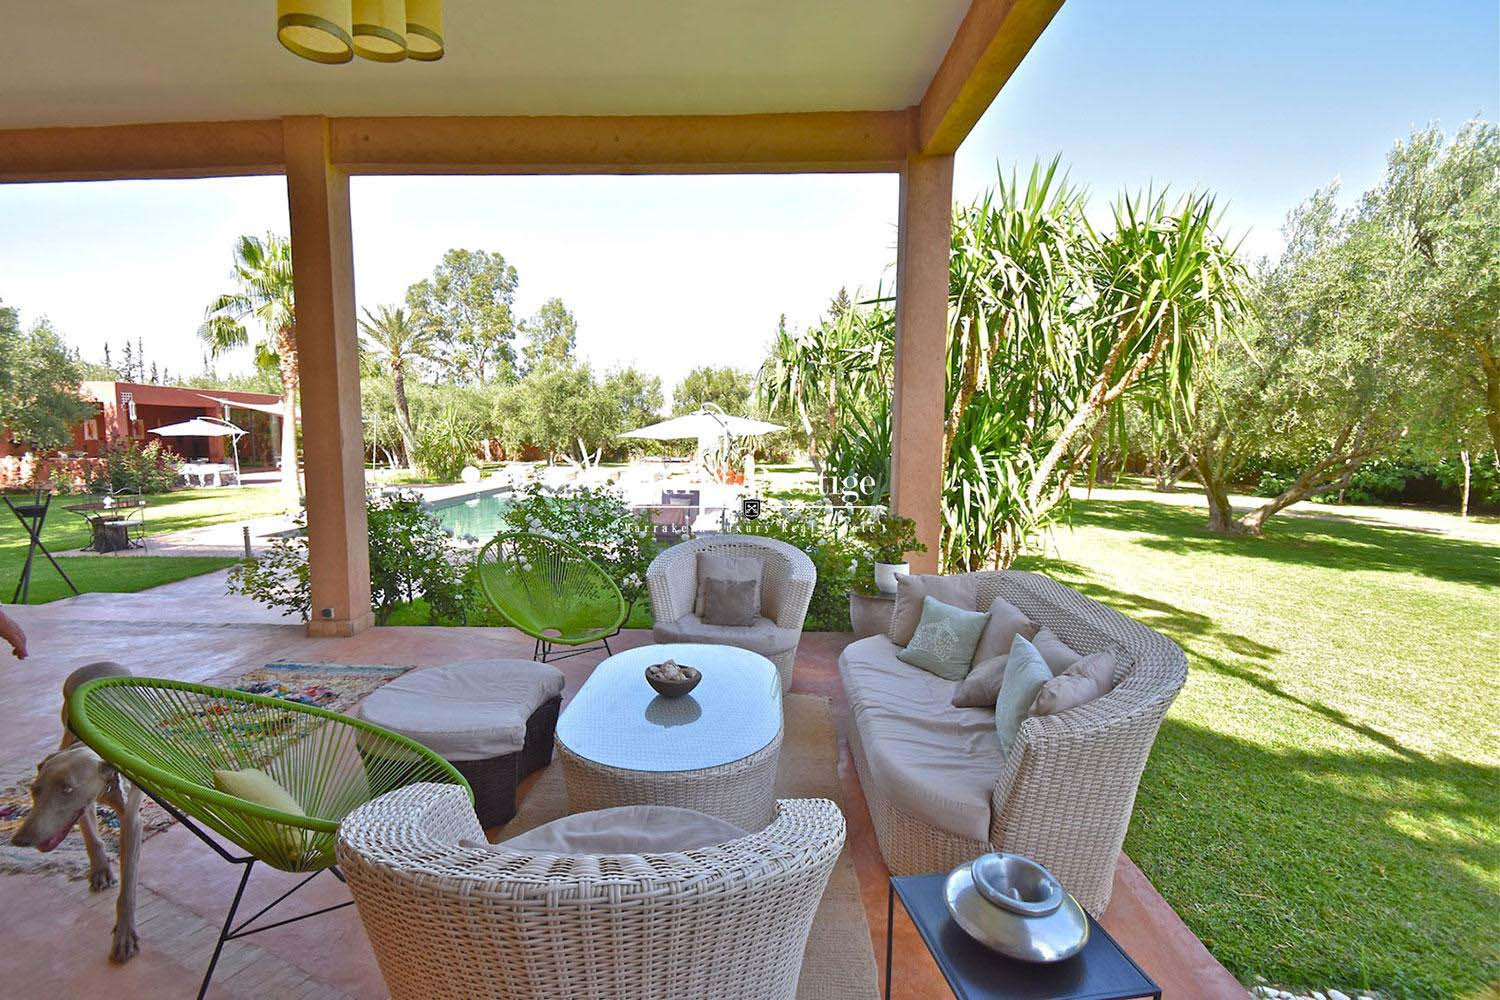 Propriete en vente a Marrakech